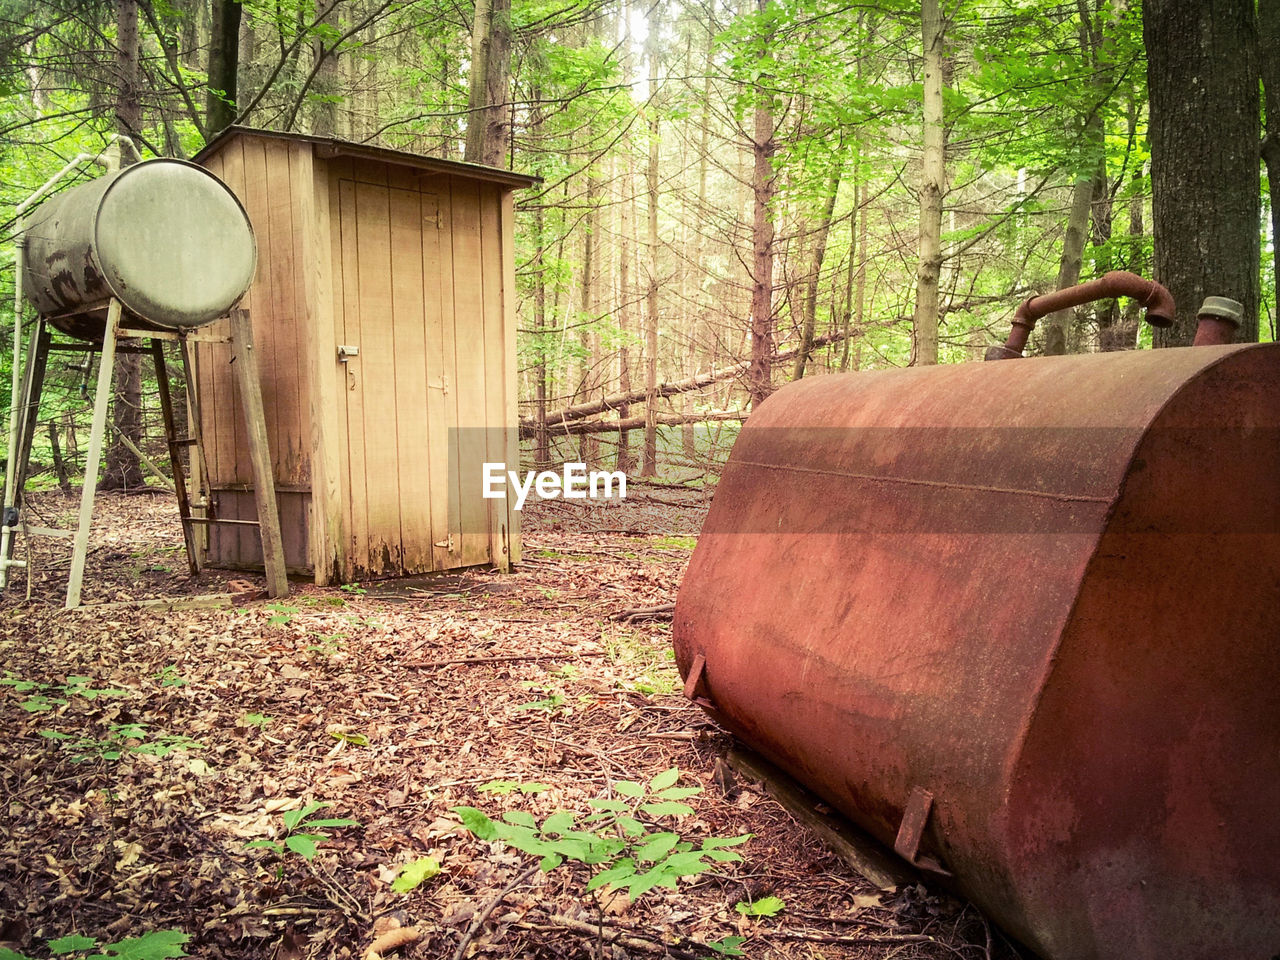 tree, day, tree trunk, barrel, forest, no people, wood - material, outdoors, wine cask, leaf, nature